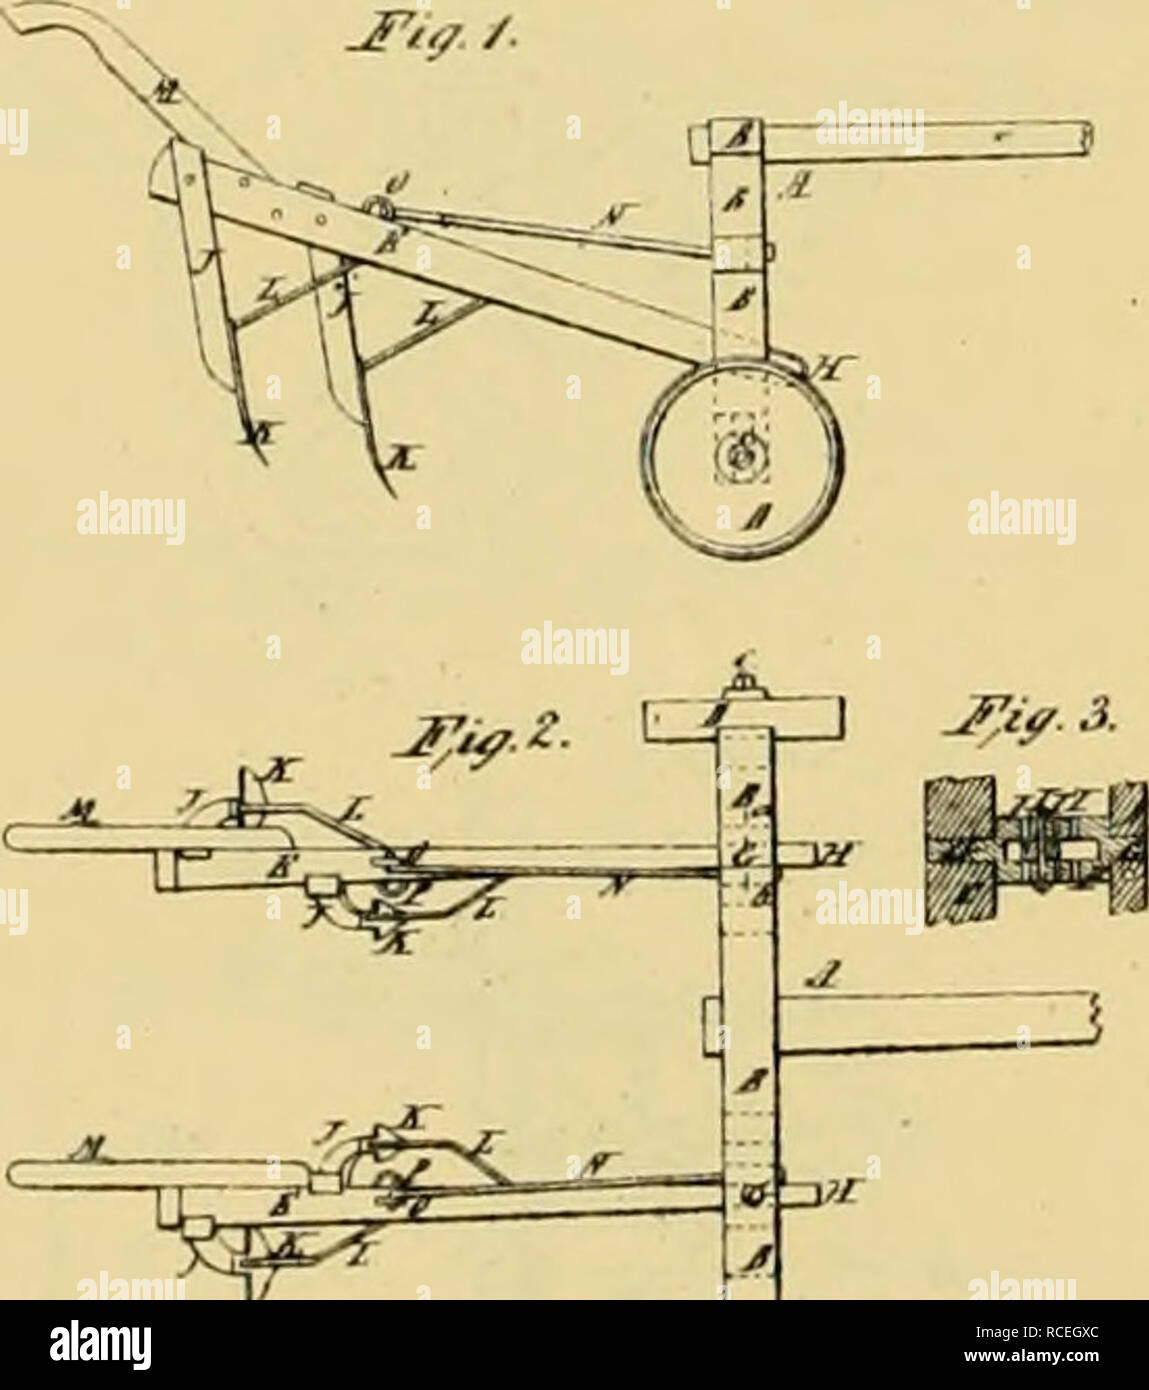 ". Digest of agricultural implements, patented in the United States from A.D. 1789 to July 1881 ... Agricultural machinery; Patents. I. a BARLEY, Wlieel-CiilUviitor PsWnted Se|.t 24, 1857. ^^ Mnt""Ur: >* ! W ^_^^^3; . ^ ^=^=^ -—,4, ^ P^^ f. Please note that these images are extracted from scanned page images that may have been digitally enhanced for readability - coloration and appearance of these illustrations may not perfectly resemble the original work.. Allen, James T. (James Titus); United States. Patent Office. [New York, Printed by J. C. Von Arx - Stock Image"